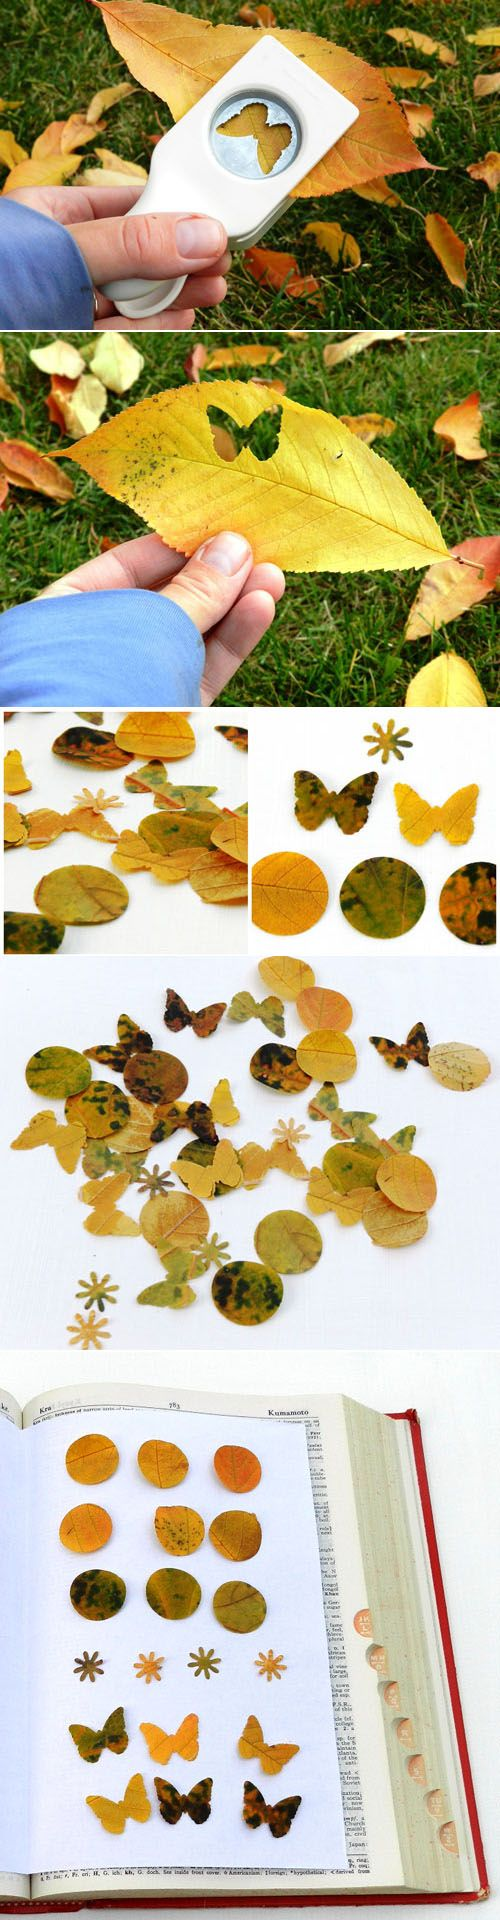 Use decorative paper punch to punch into leaves for fall art projects